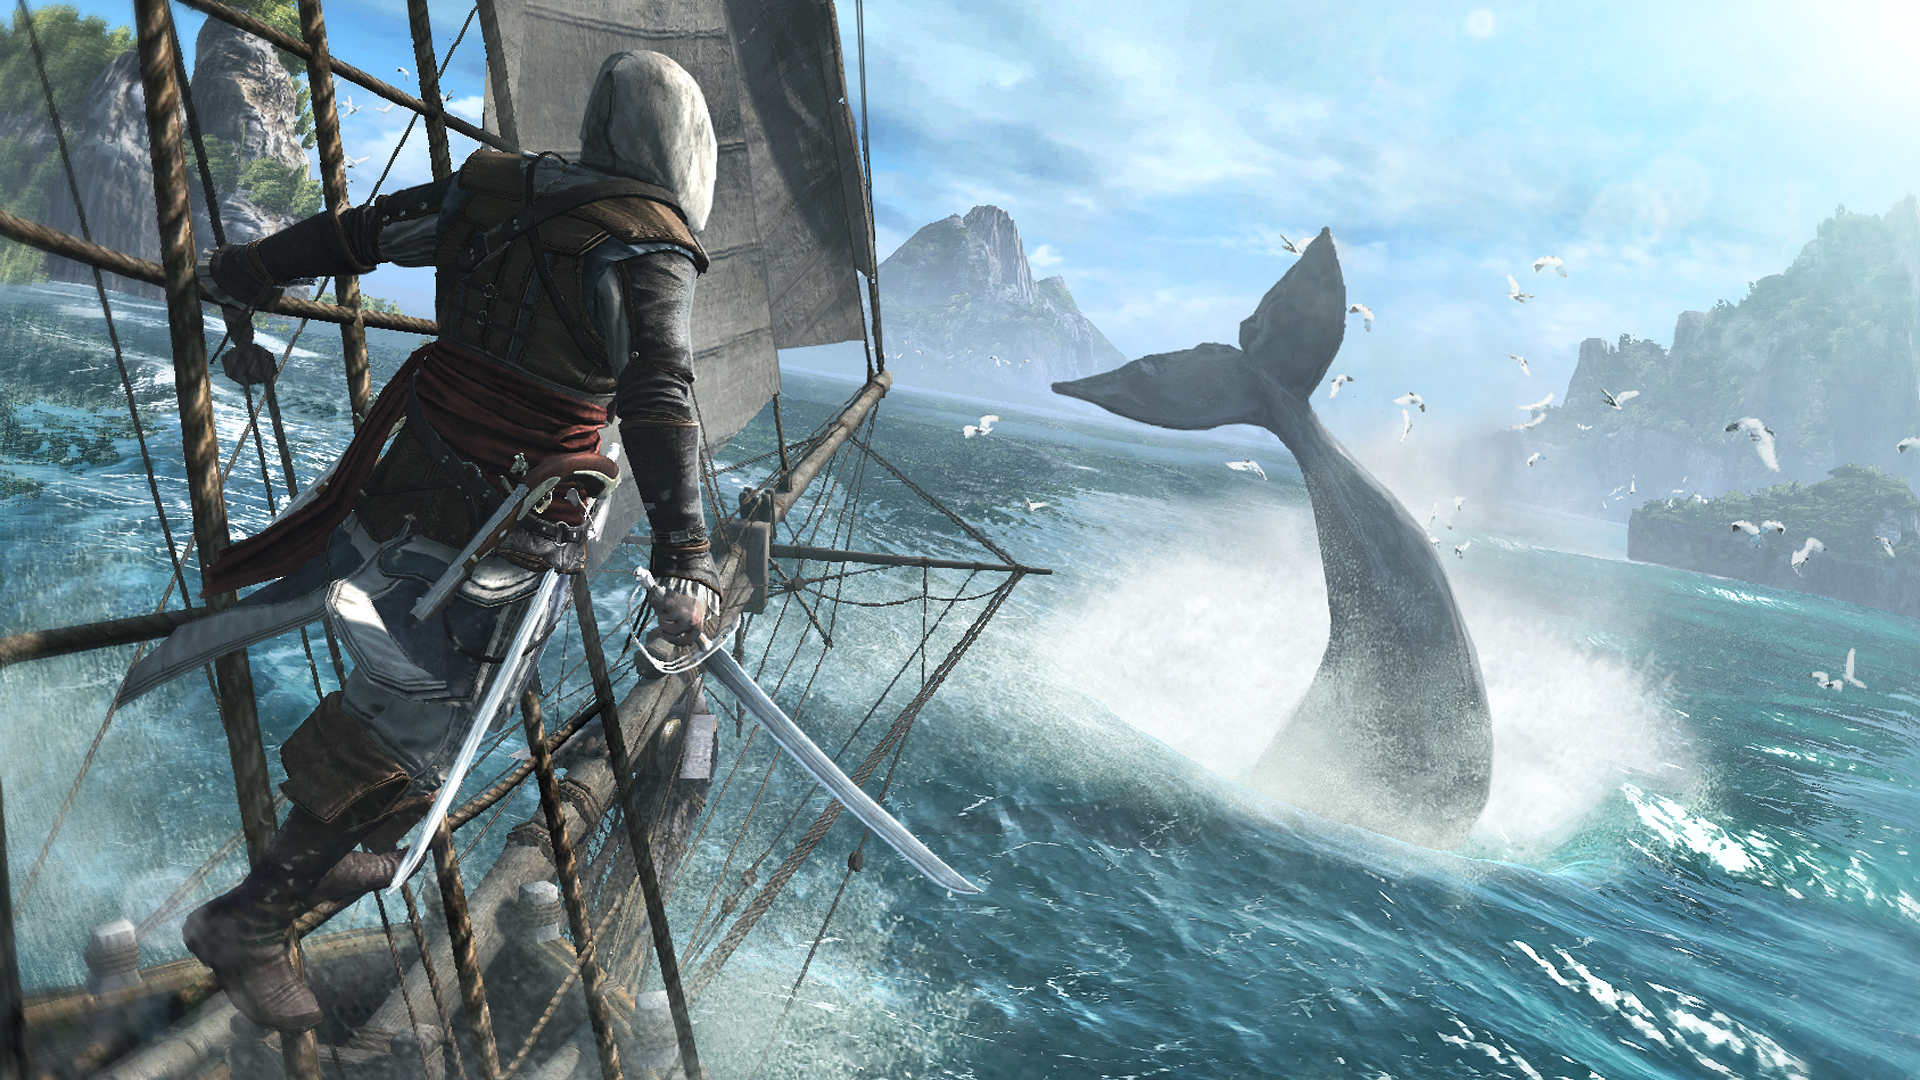 blackflag promo 4g assassins creed wiki fandom blackflag promo 4g voltagebd Image collections